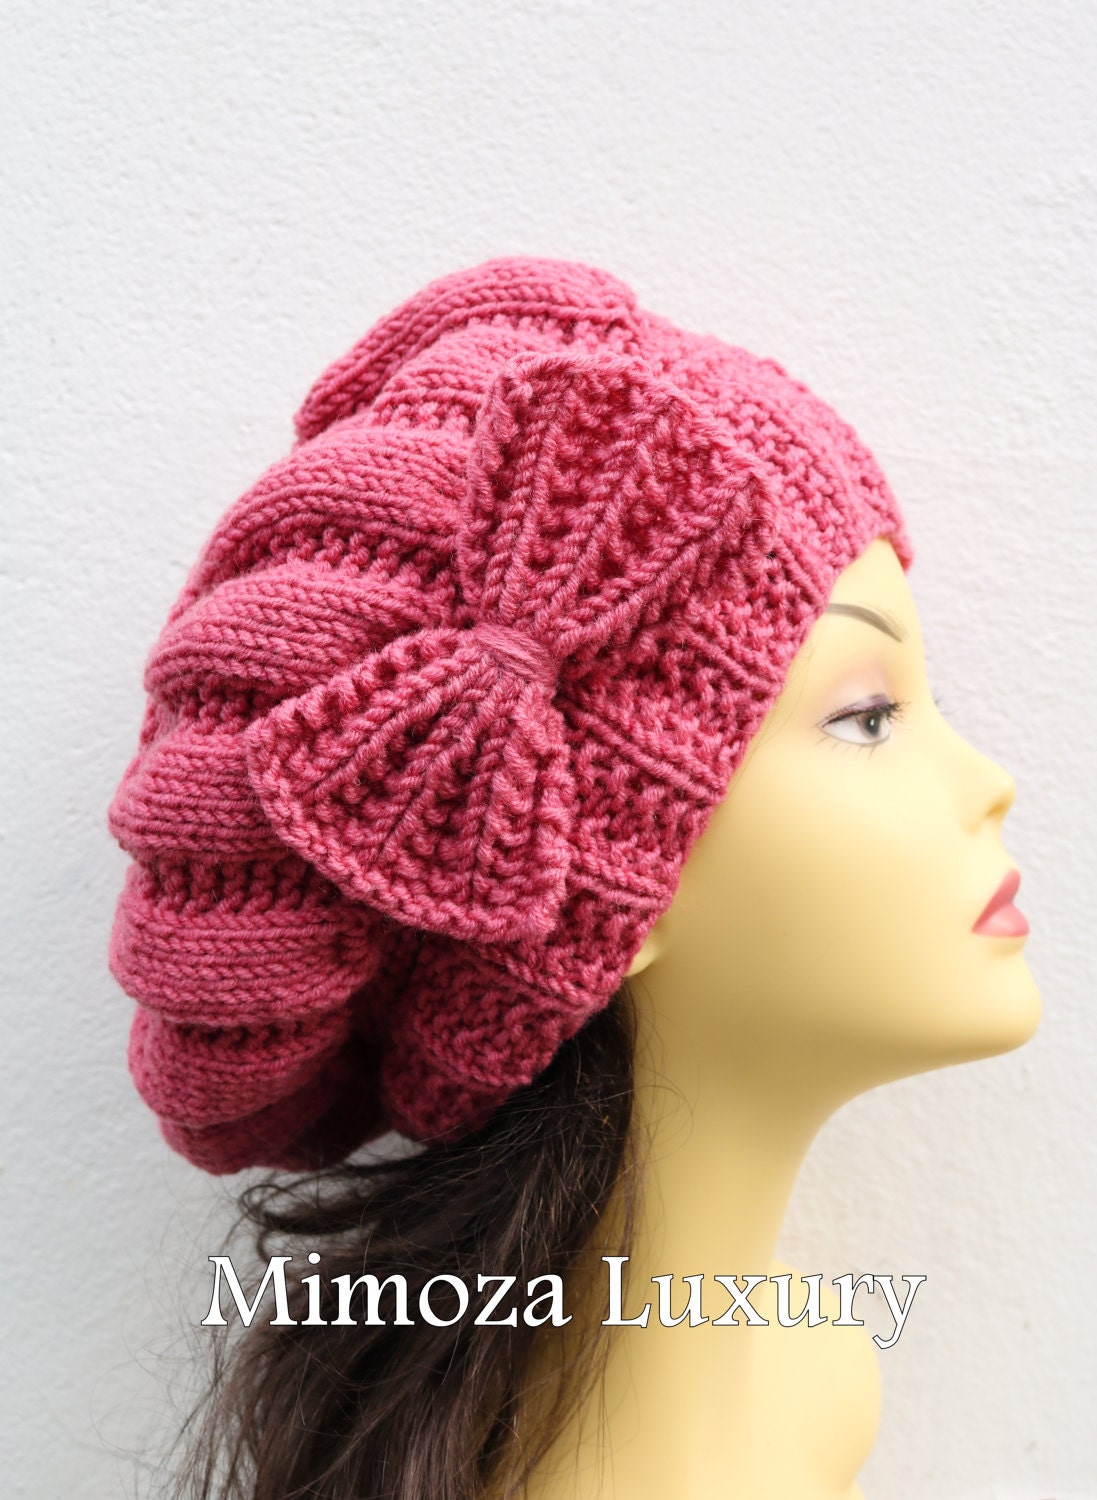 40766d47940 ... slouchy knit women s hat with bow